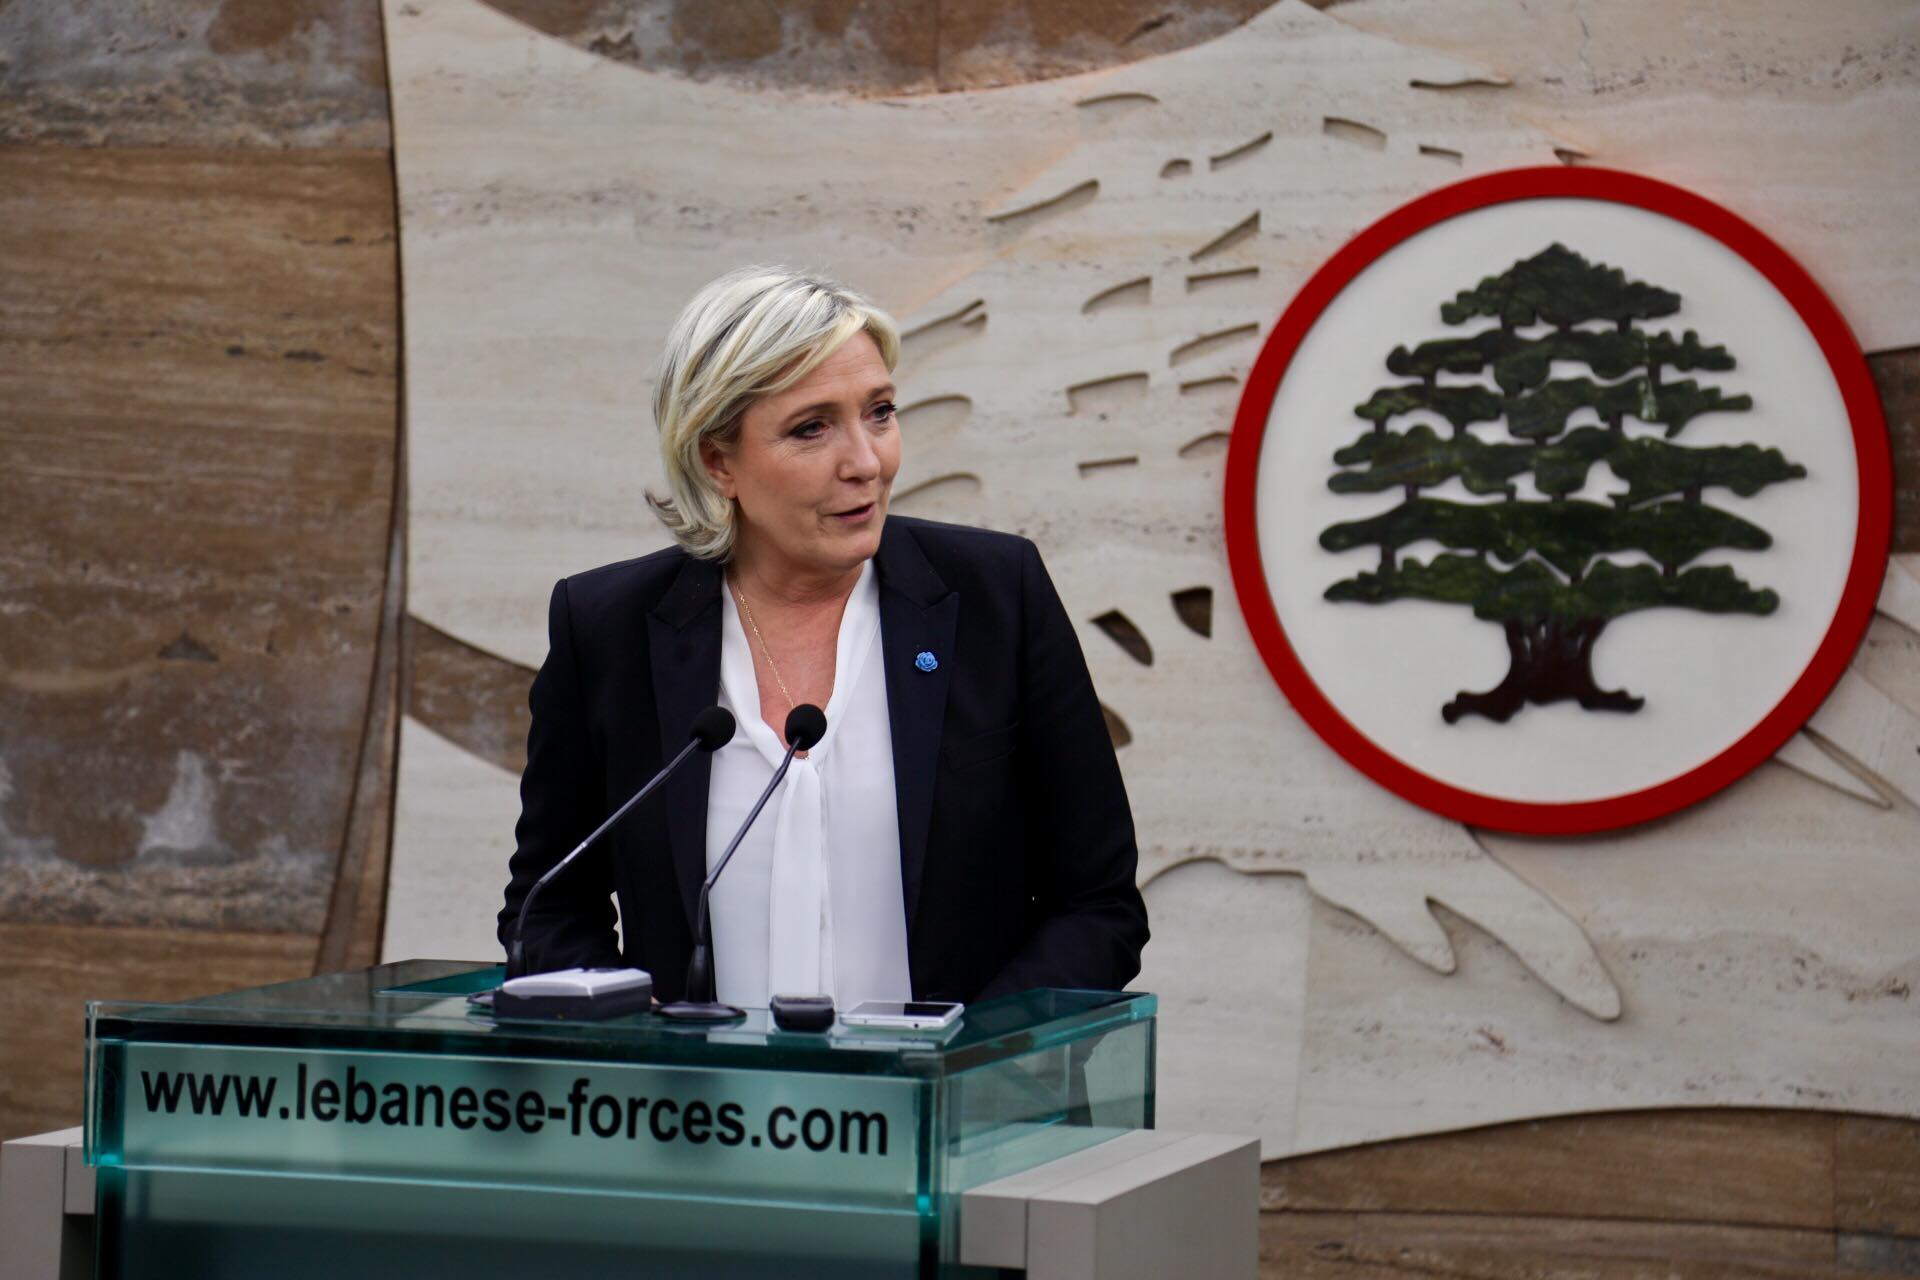 France's far-right presidential candidate Marine Le Pen refused to don a headscarf for a meeting with Lebanon's top Sunni Muslim cleric on Tuesday and walked away from the scheduled appointment after a brief squabble at the entrance. (Photo: Marine Le Pen/Facebook)